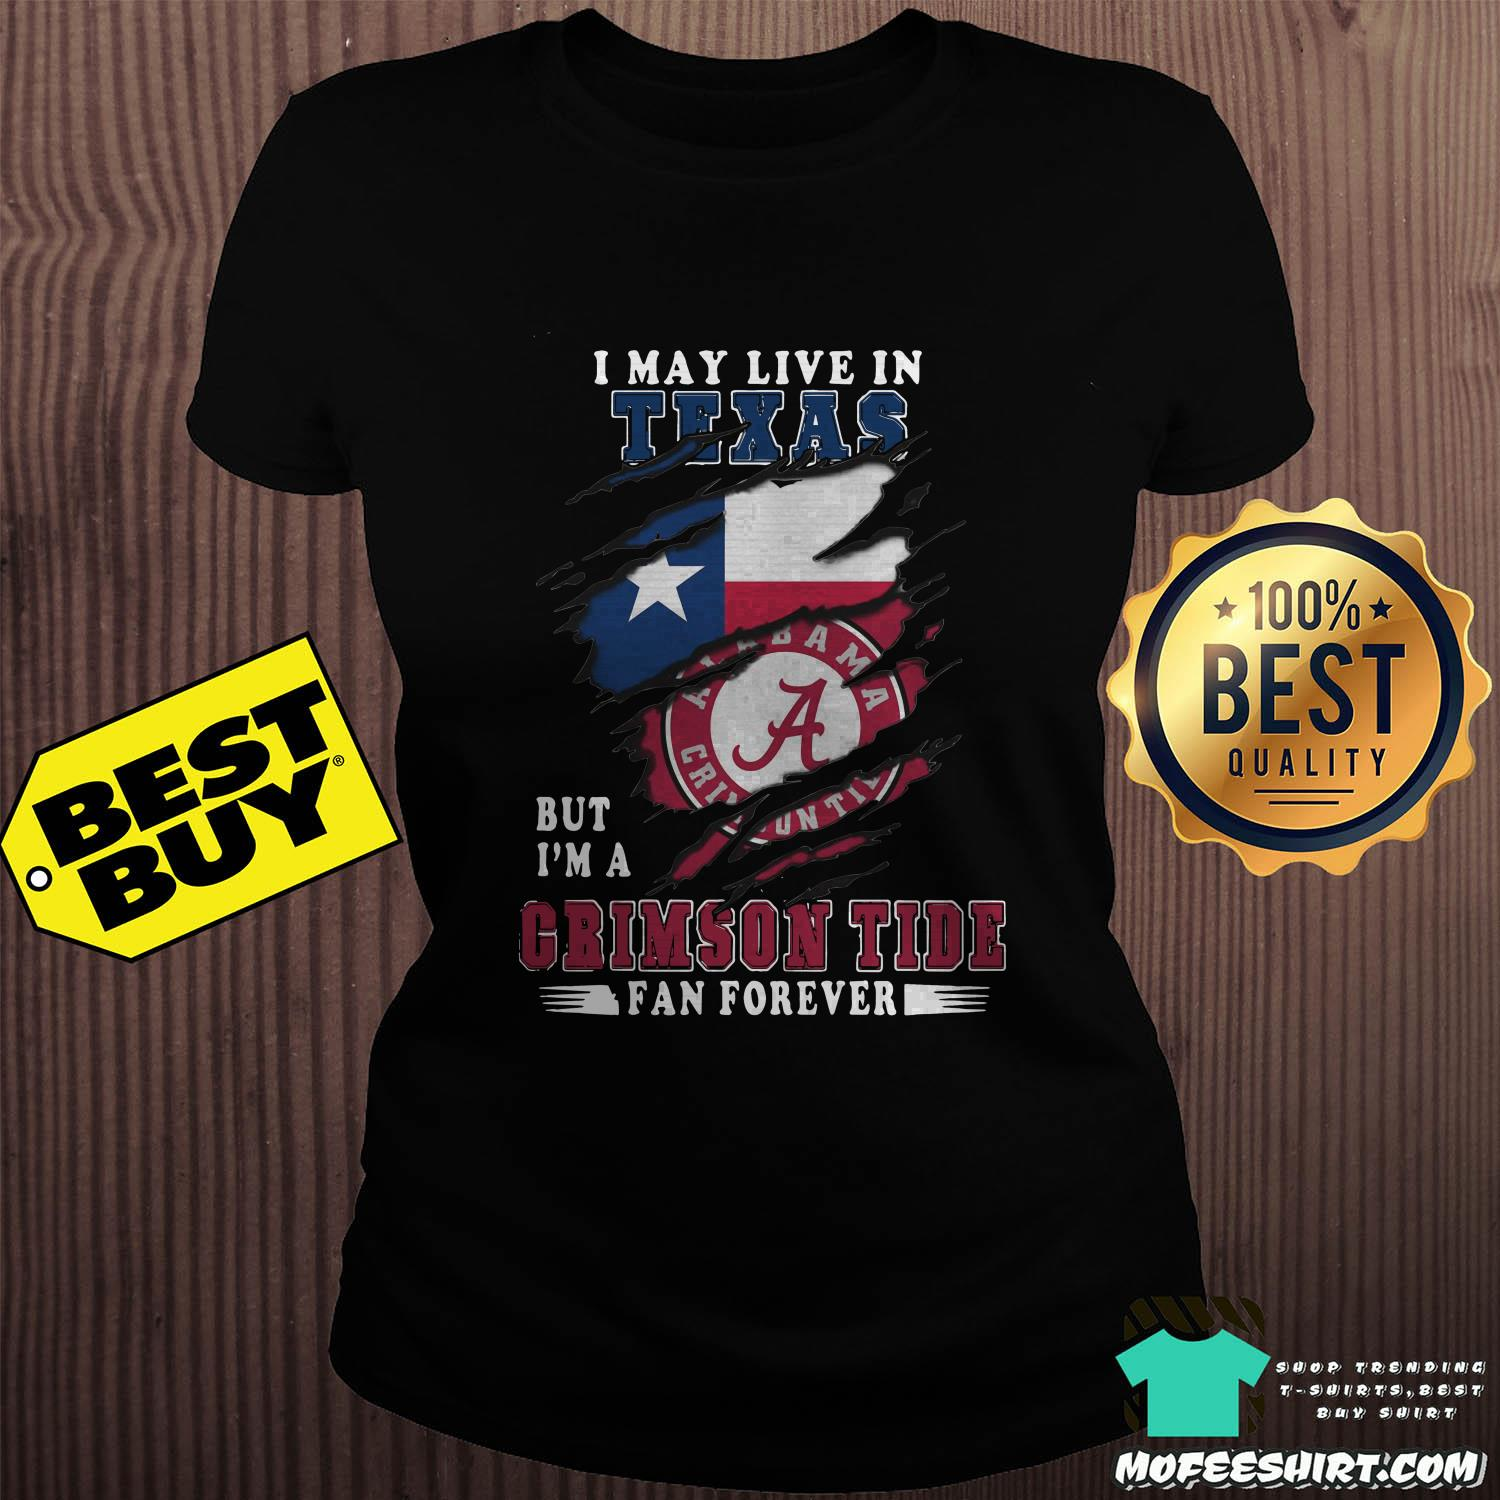 i may live in texas but im a crimson tide fan forever ladies tee - I May Live In Texas But I'm A Crimson Tide Fan Forever Alabama Crimson Shirt